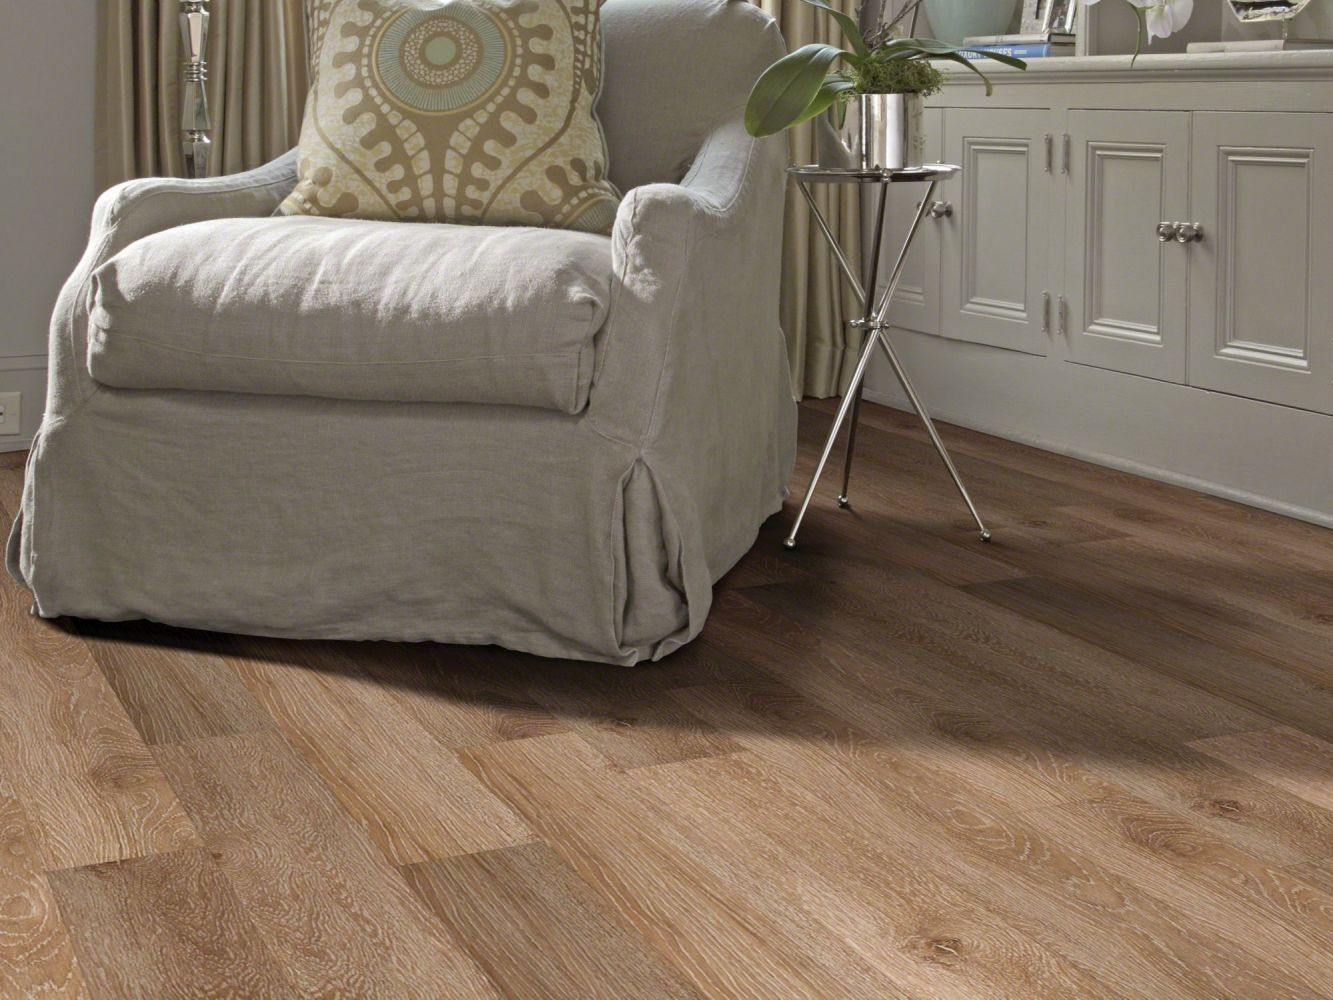 Shaw Floors Vinyl Residential New Market 6 Tribeca 00214_0145V